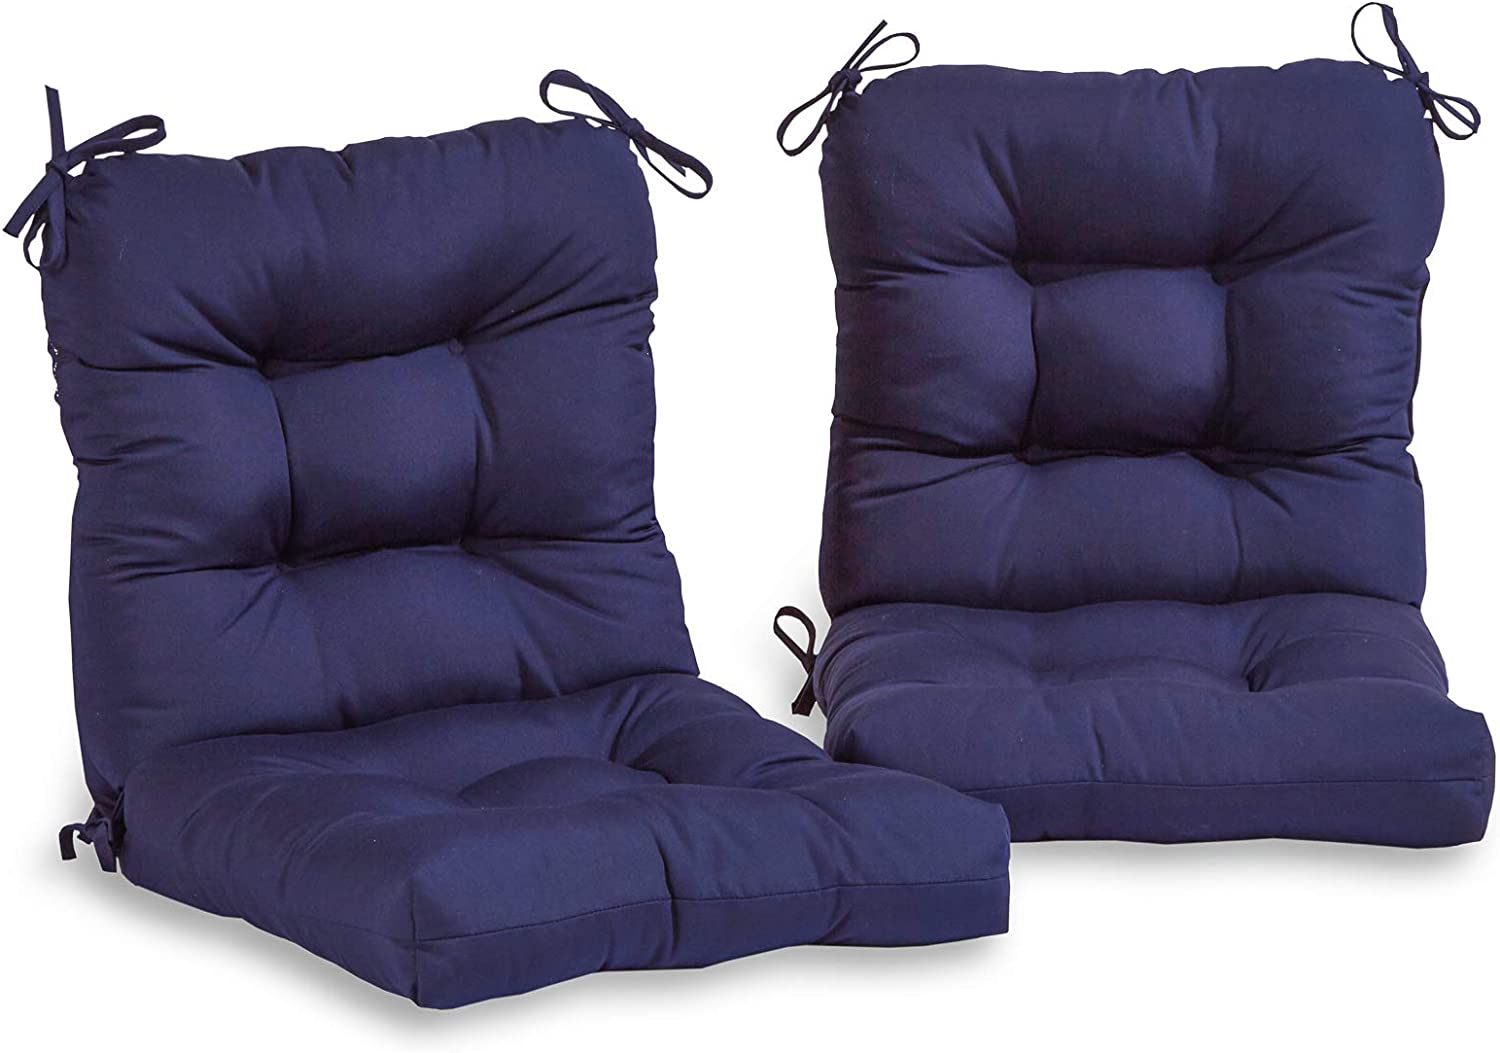 South Pine Porch AM6815S2-NAVY Solid Navy Outdoor Seat/Back Chair Cushion, Set of 2